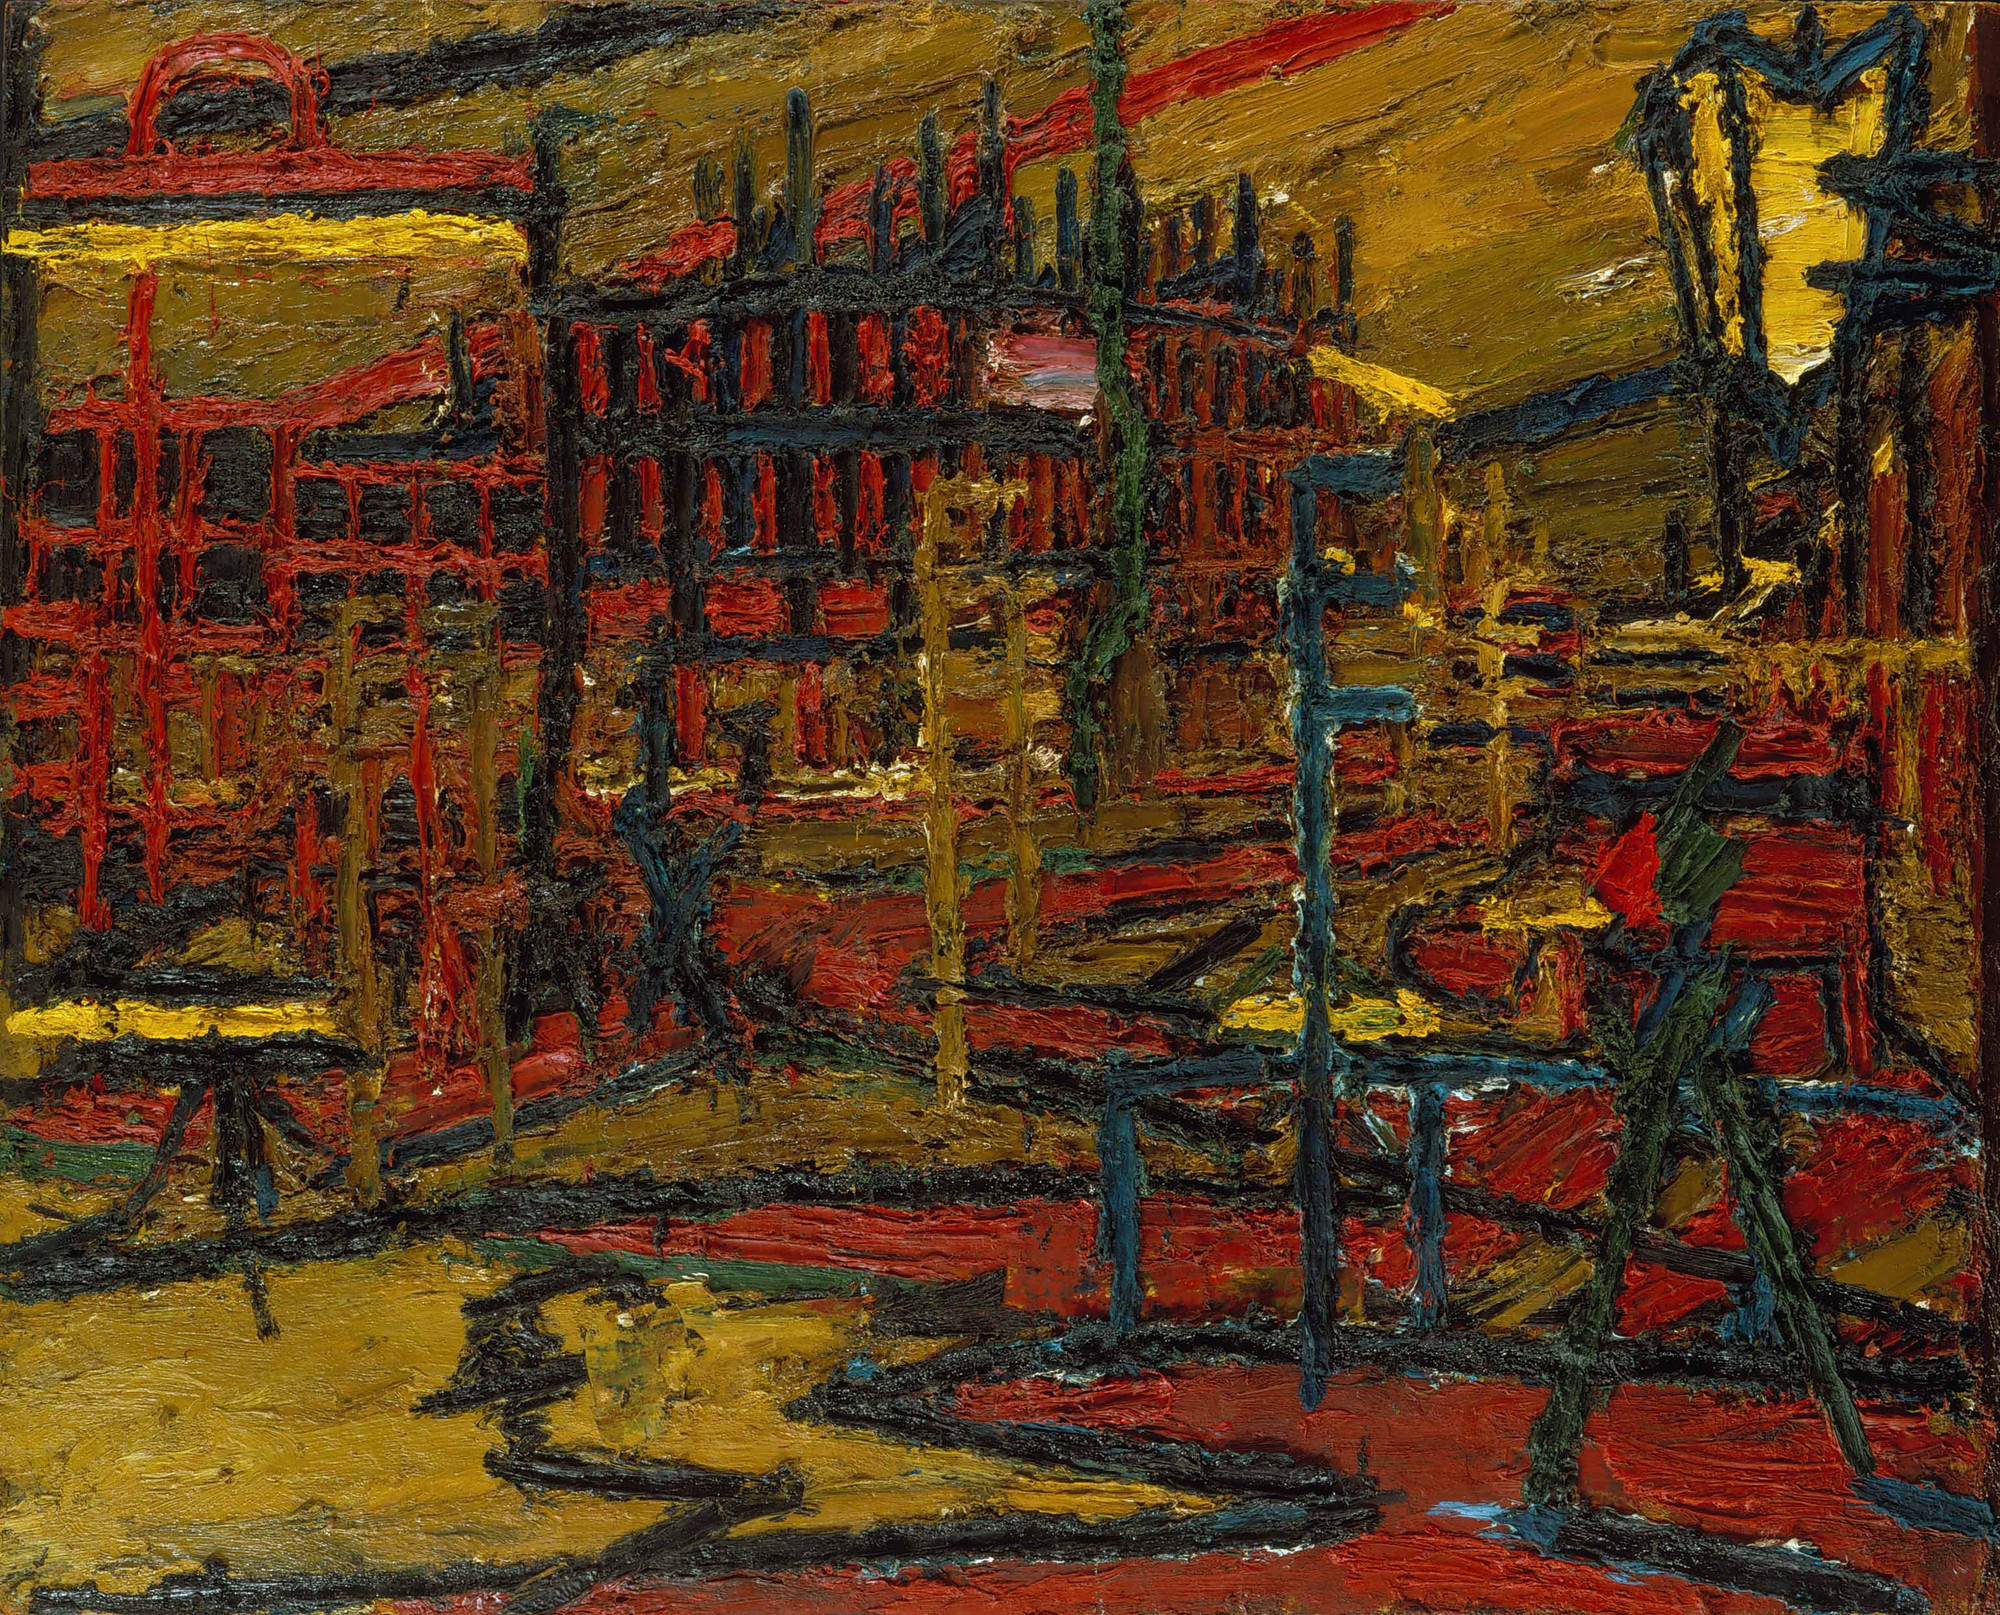 As war-ravaged London was being rebuilt, Frank Auerbach used images such as the 1966